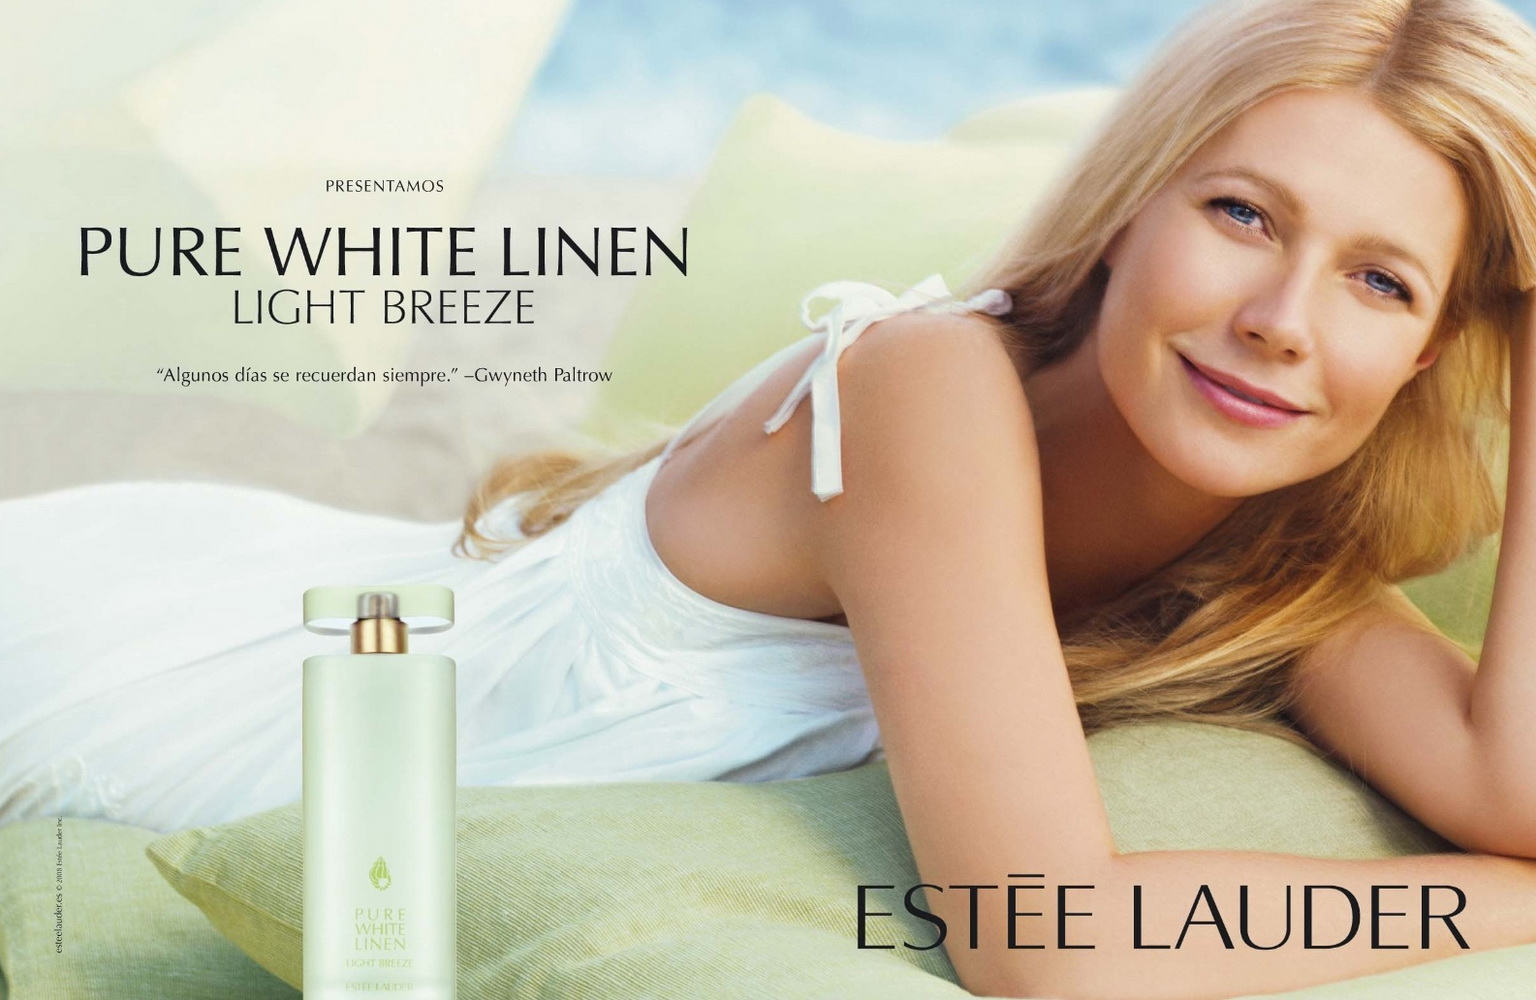 Gwyneth Paltrow in Estee Lauder's perfume ad